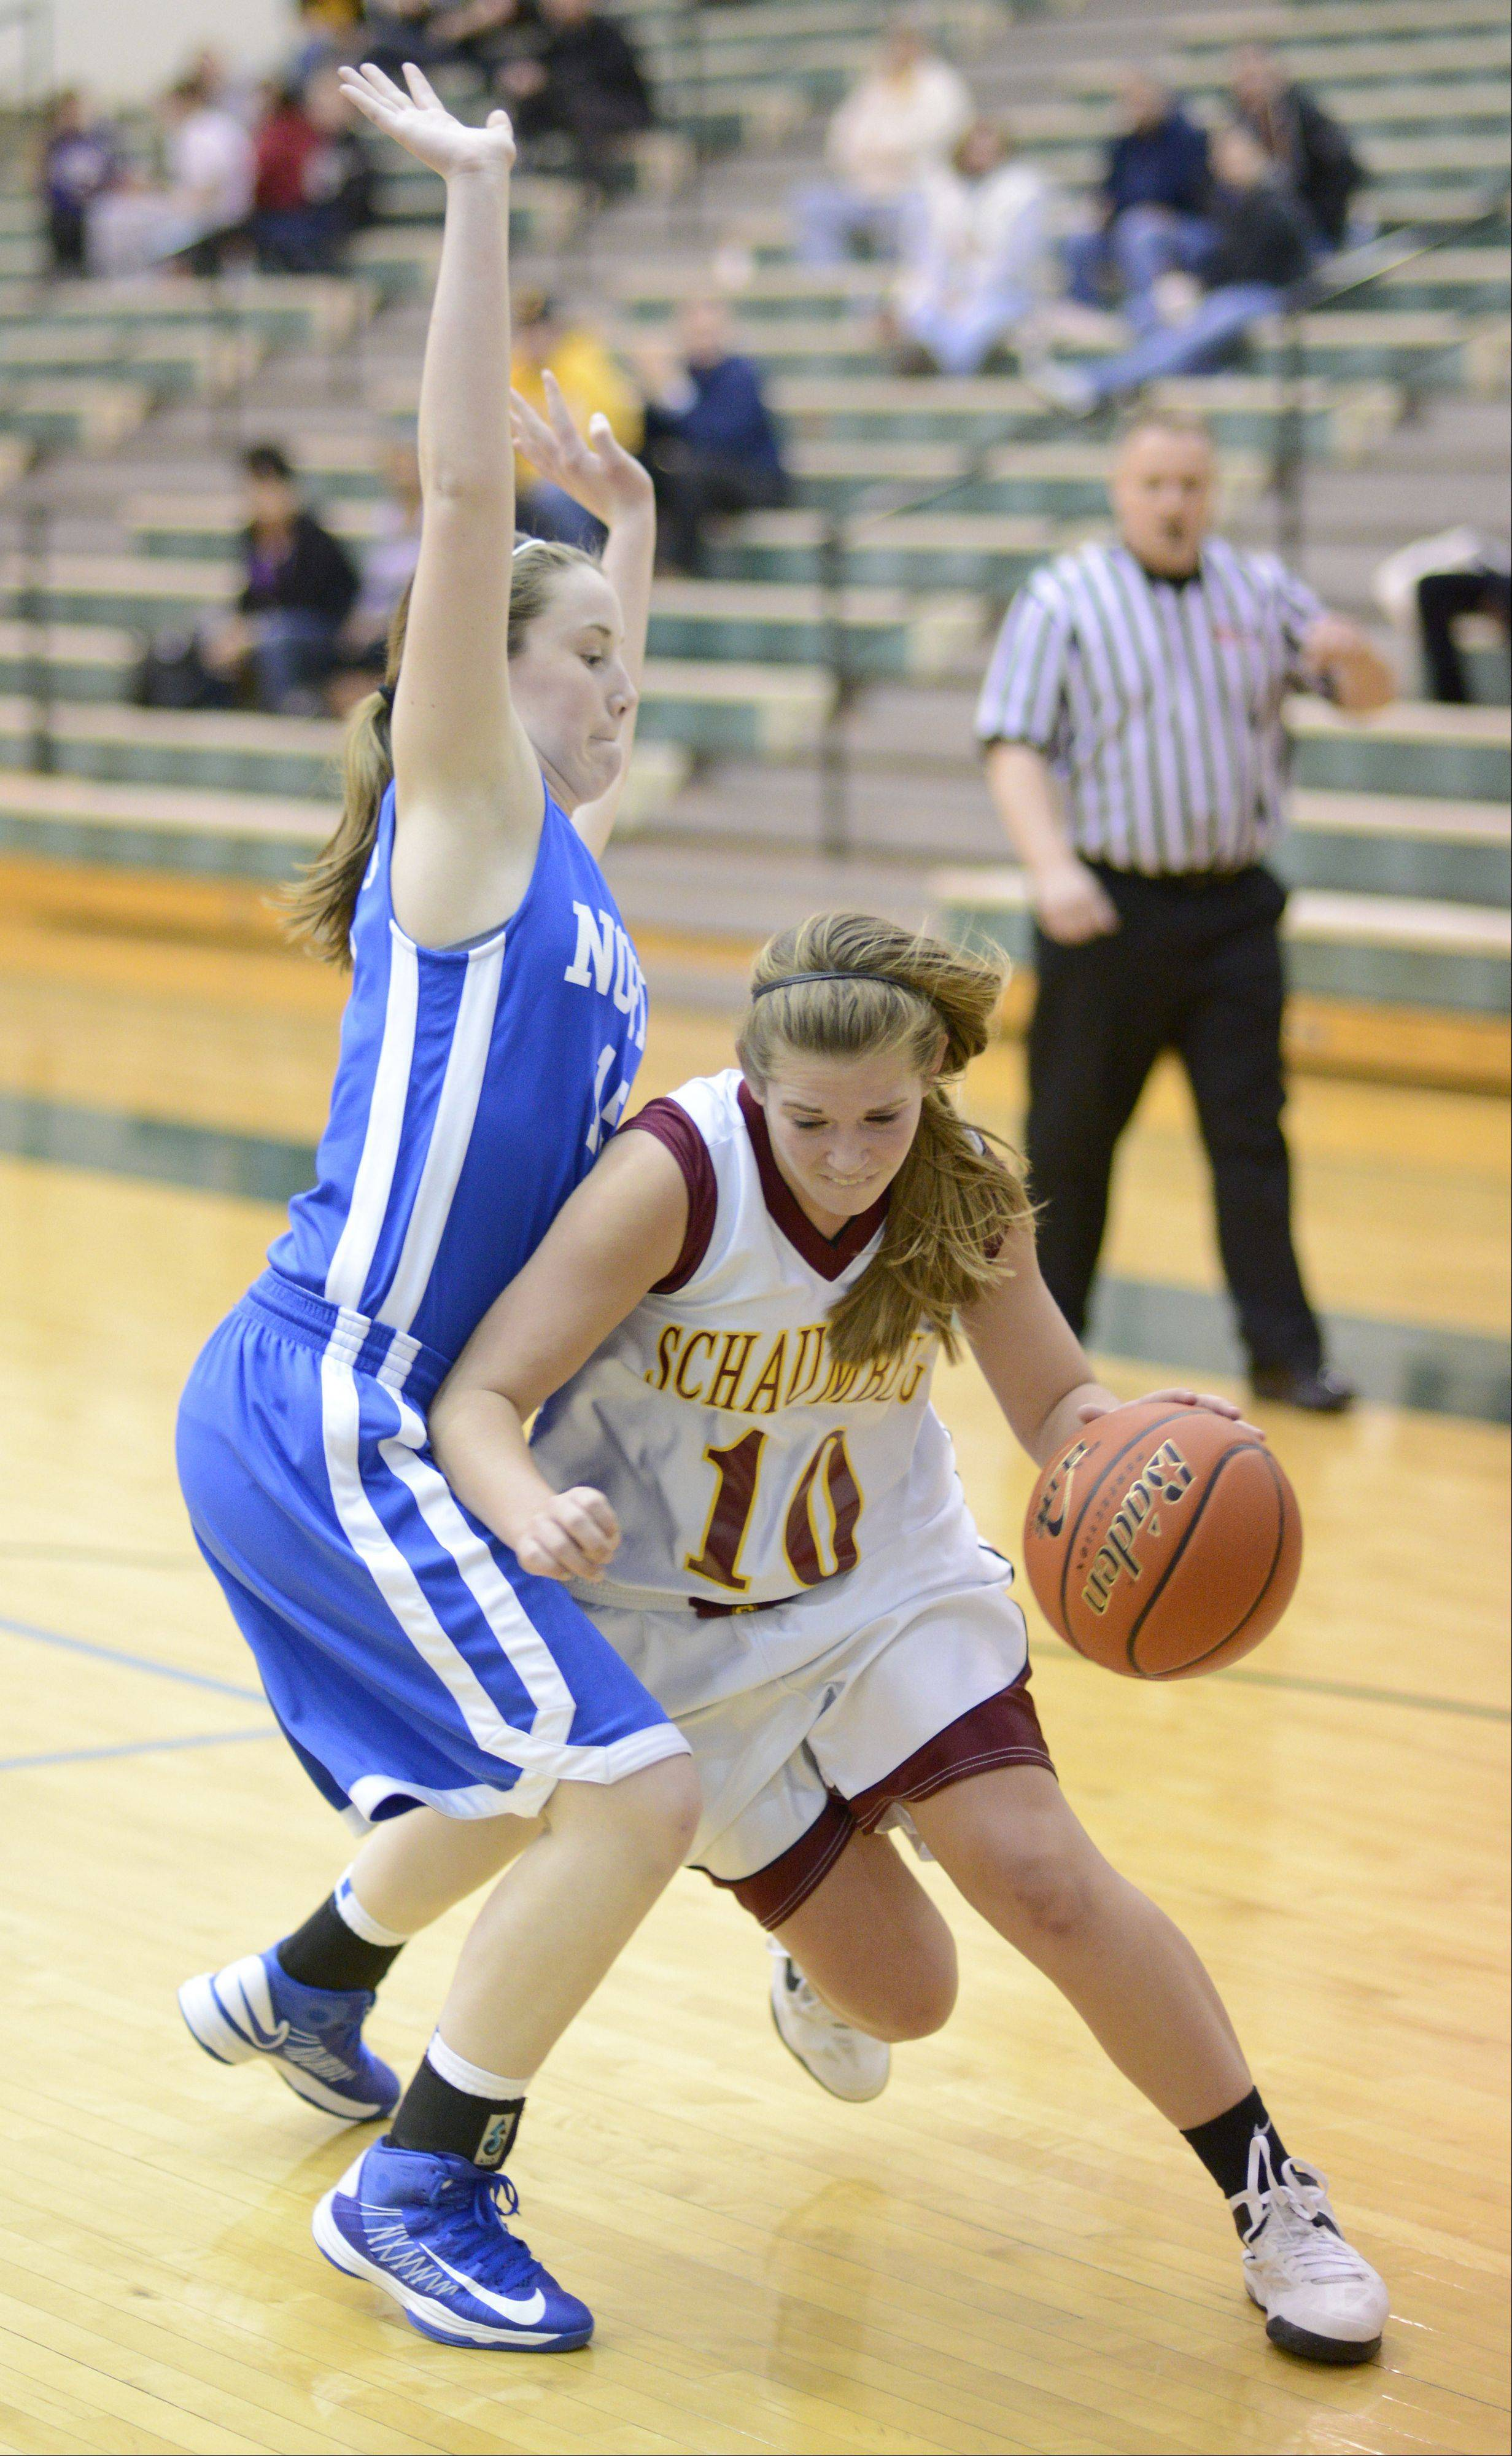 Schaumburg's Riley Williams maneuvers around a block by Wheaton North's Kelly Thornton in the third quarter of the Class 4A regional game on Tuesday, February 19.